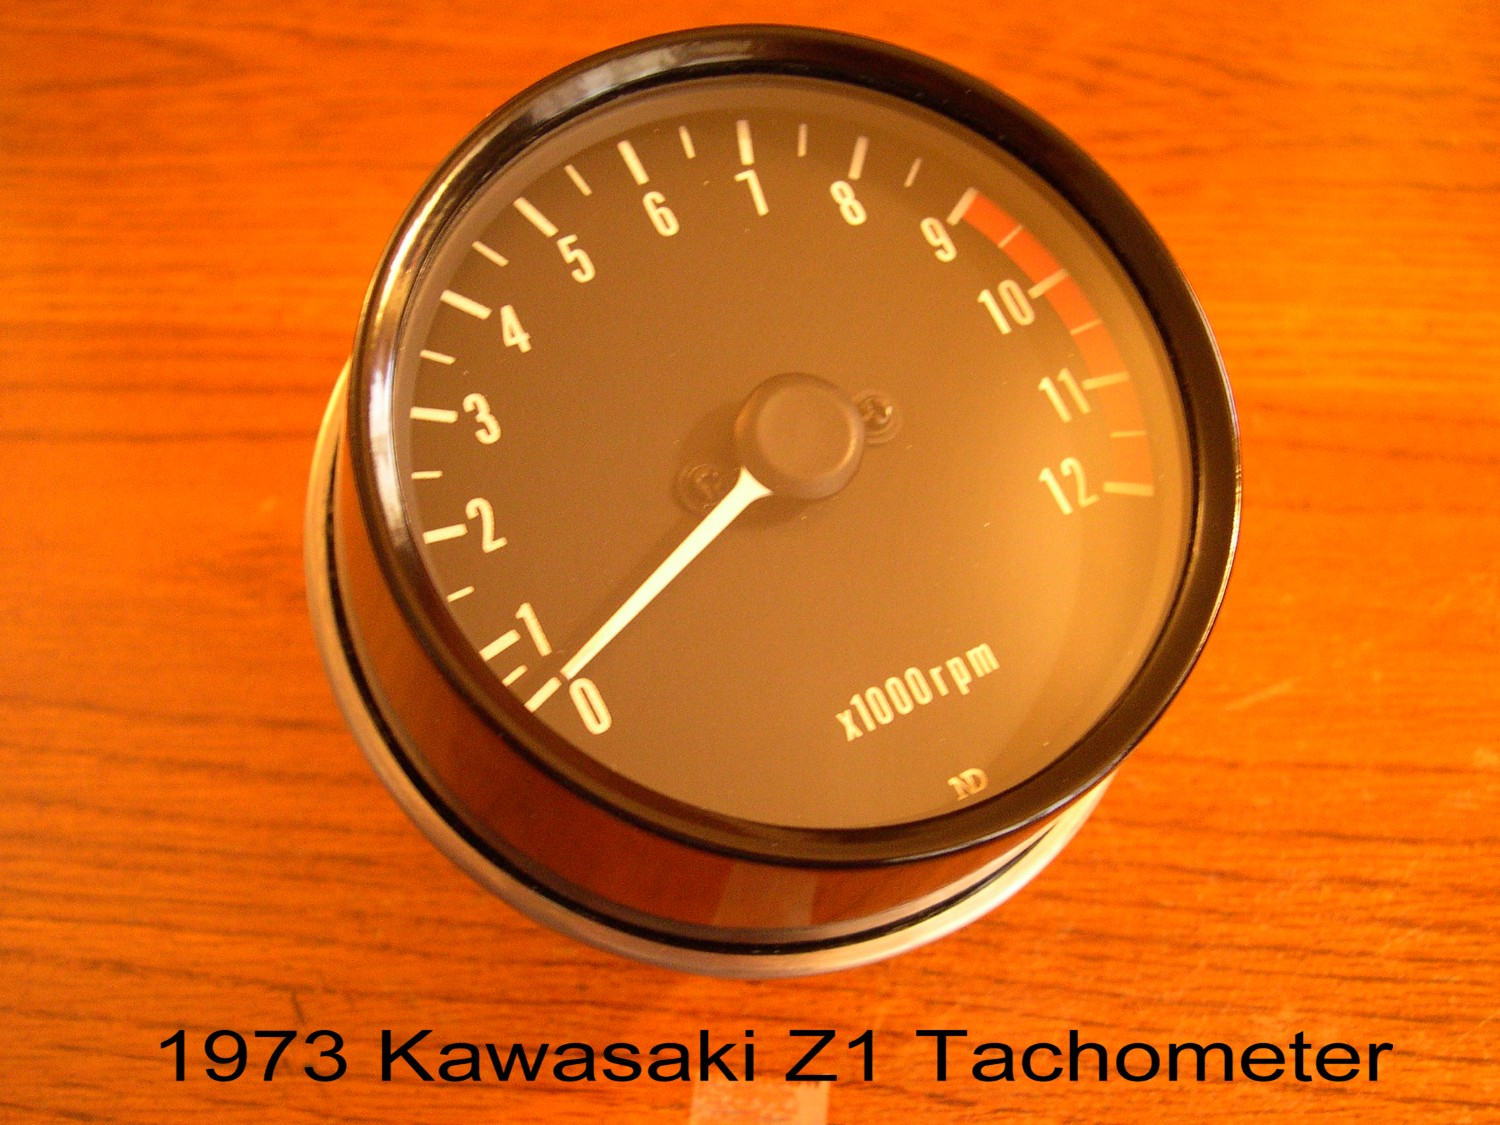 Like the 1973 Z1 speedometer, the tachometer has the same small ND very low  on the face. The redline starts at 9,000rpm and finishes at 12,000rpm